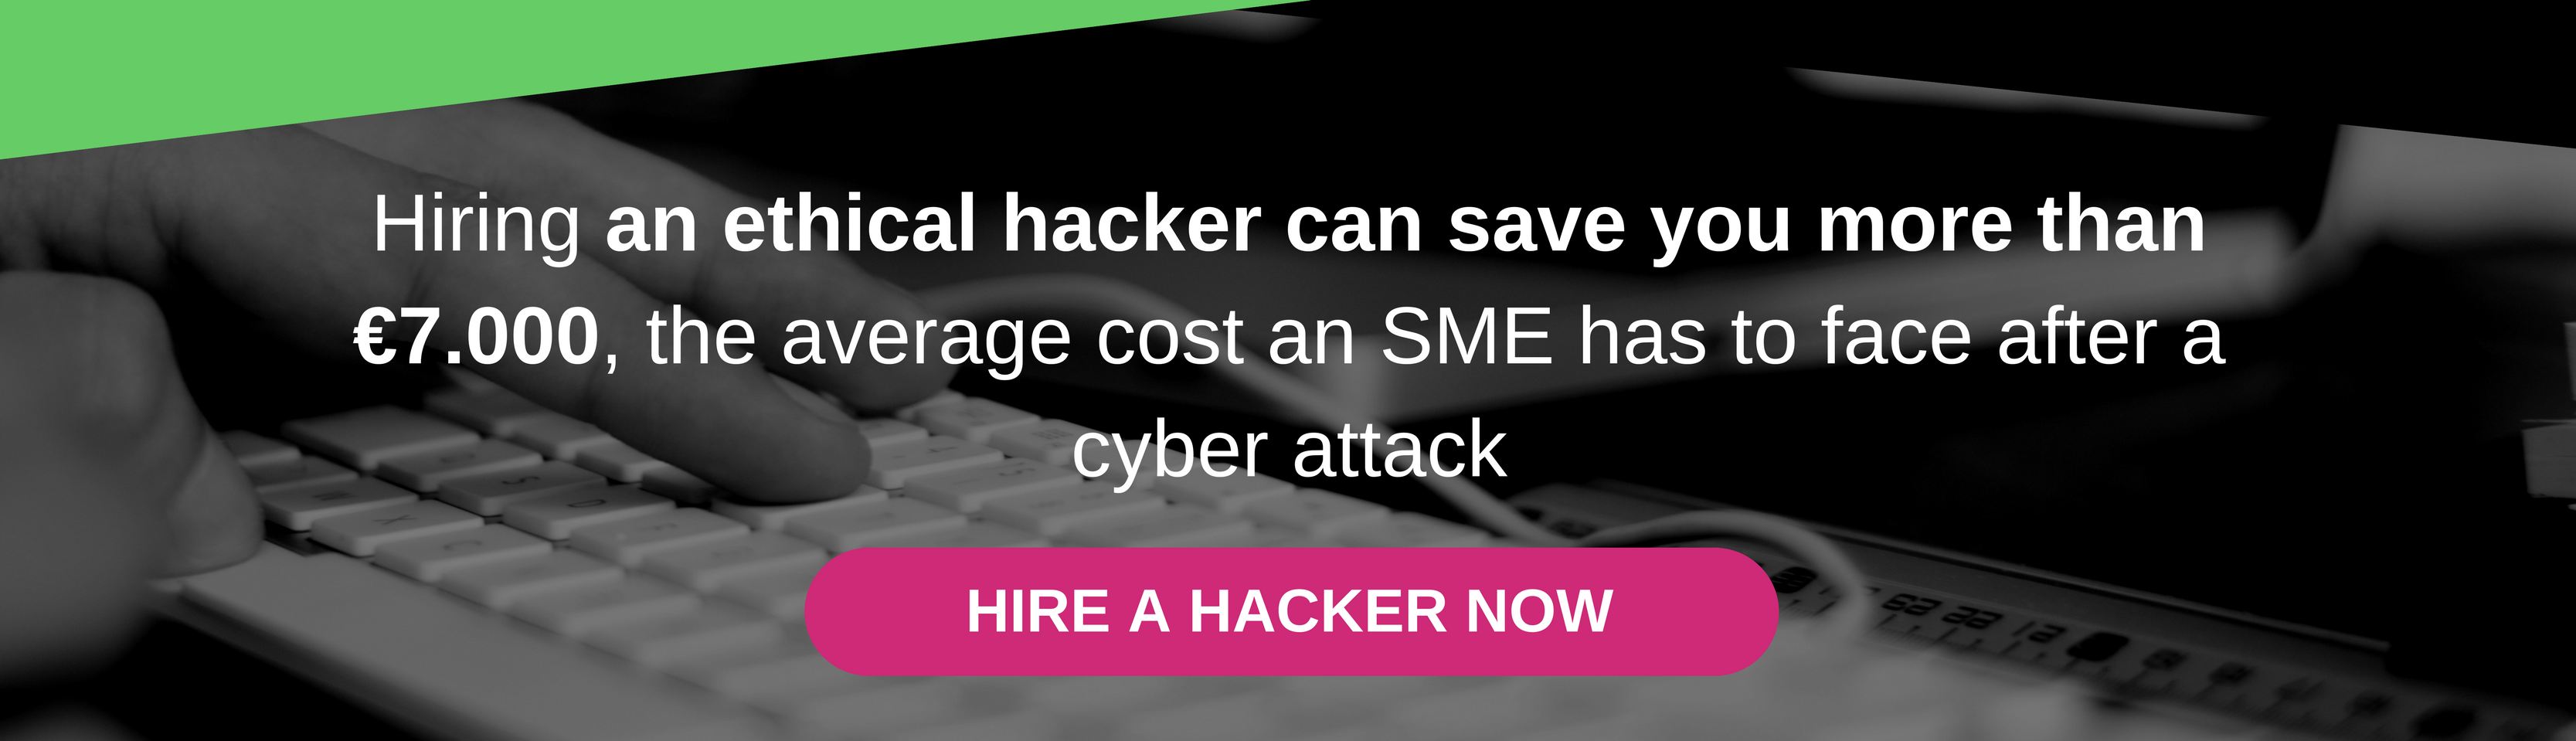 Hiring an ethical hacker can save you more than 7.000€